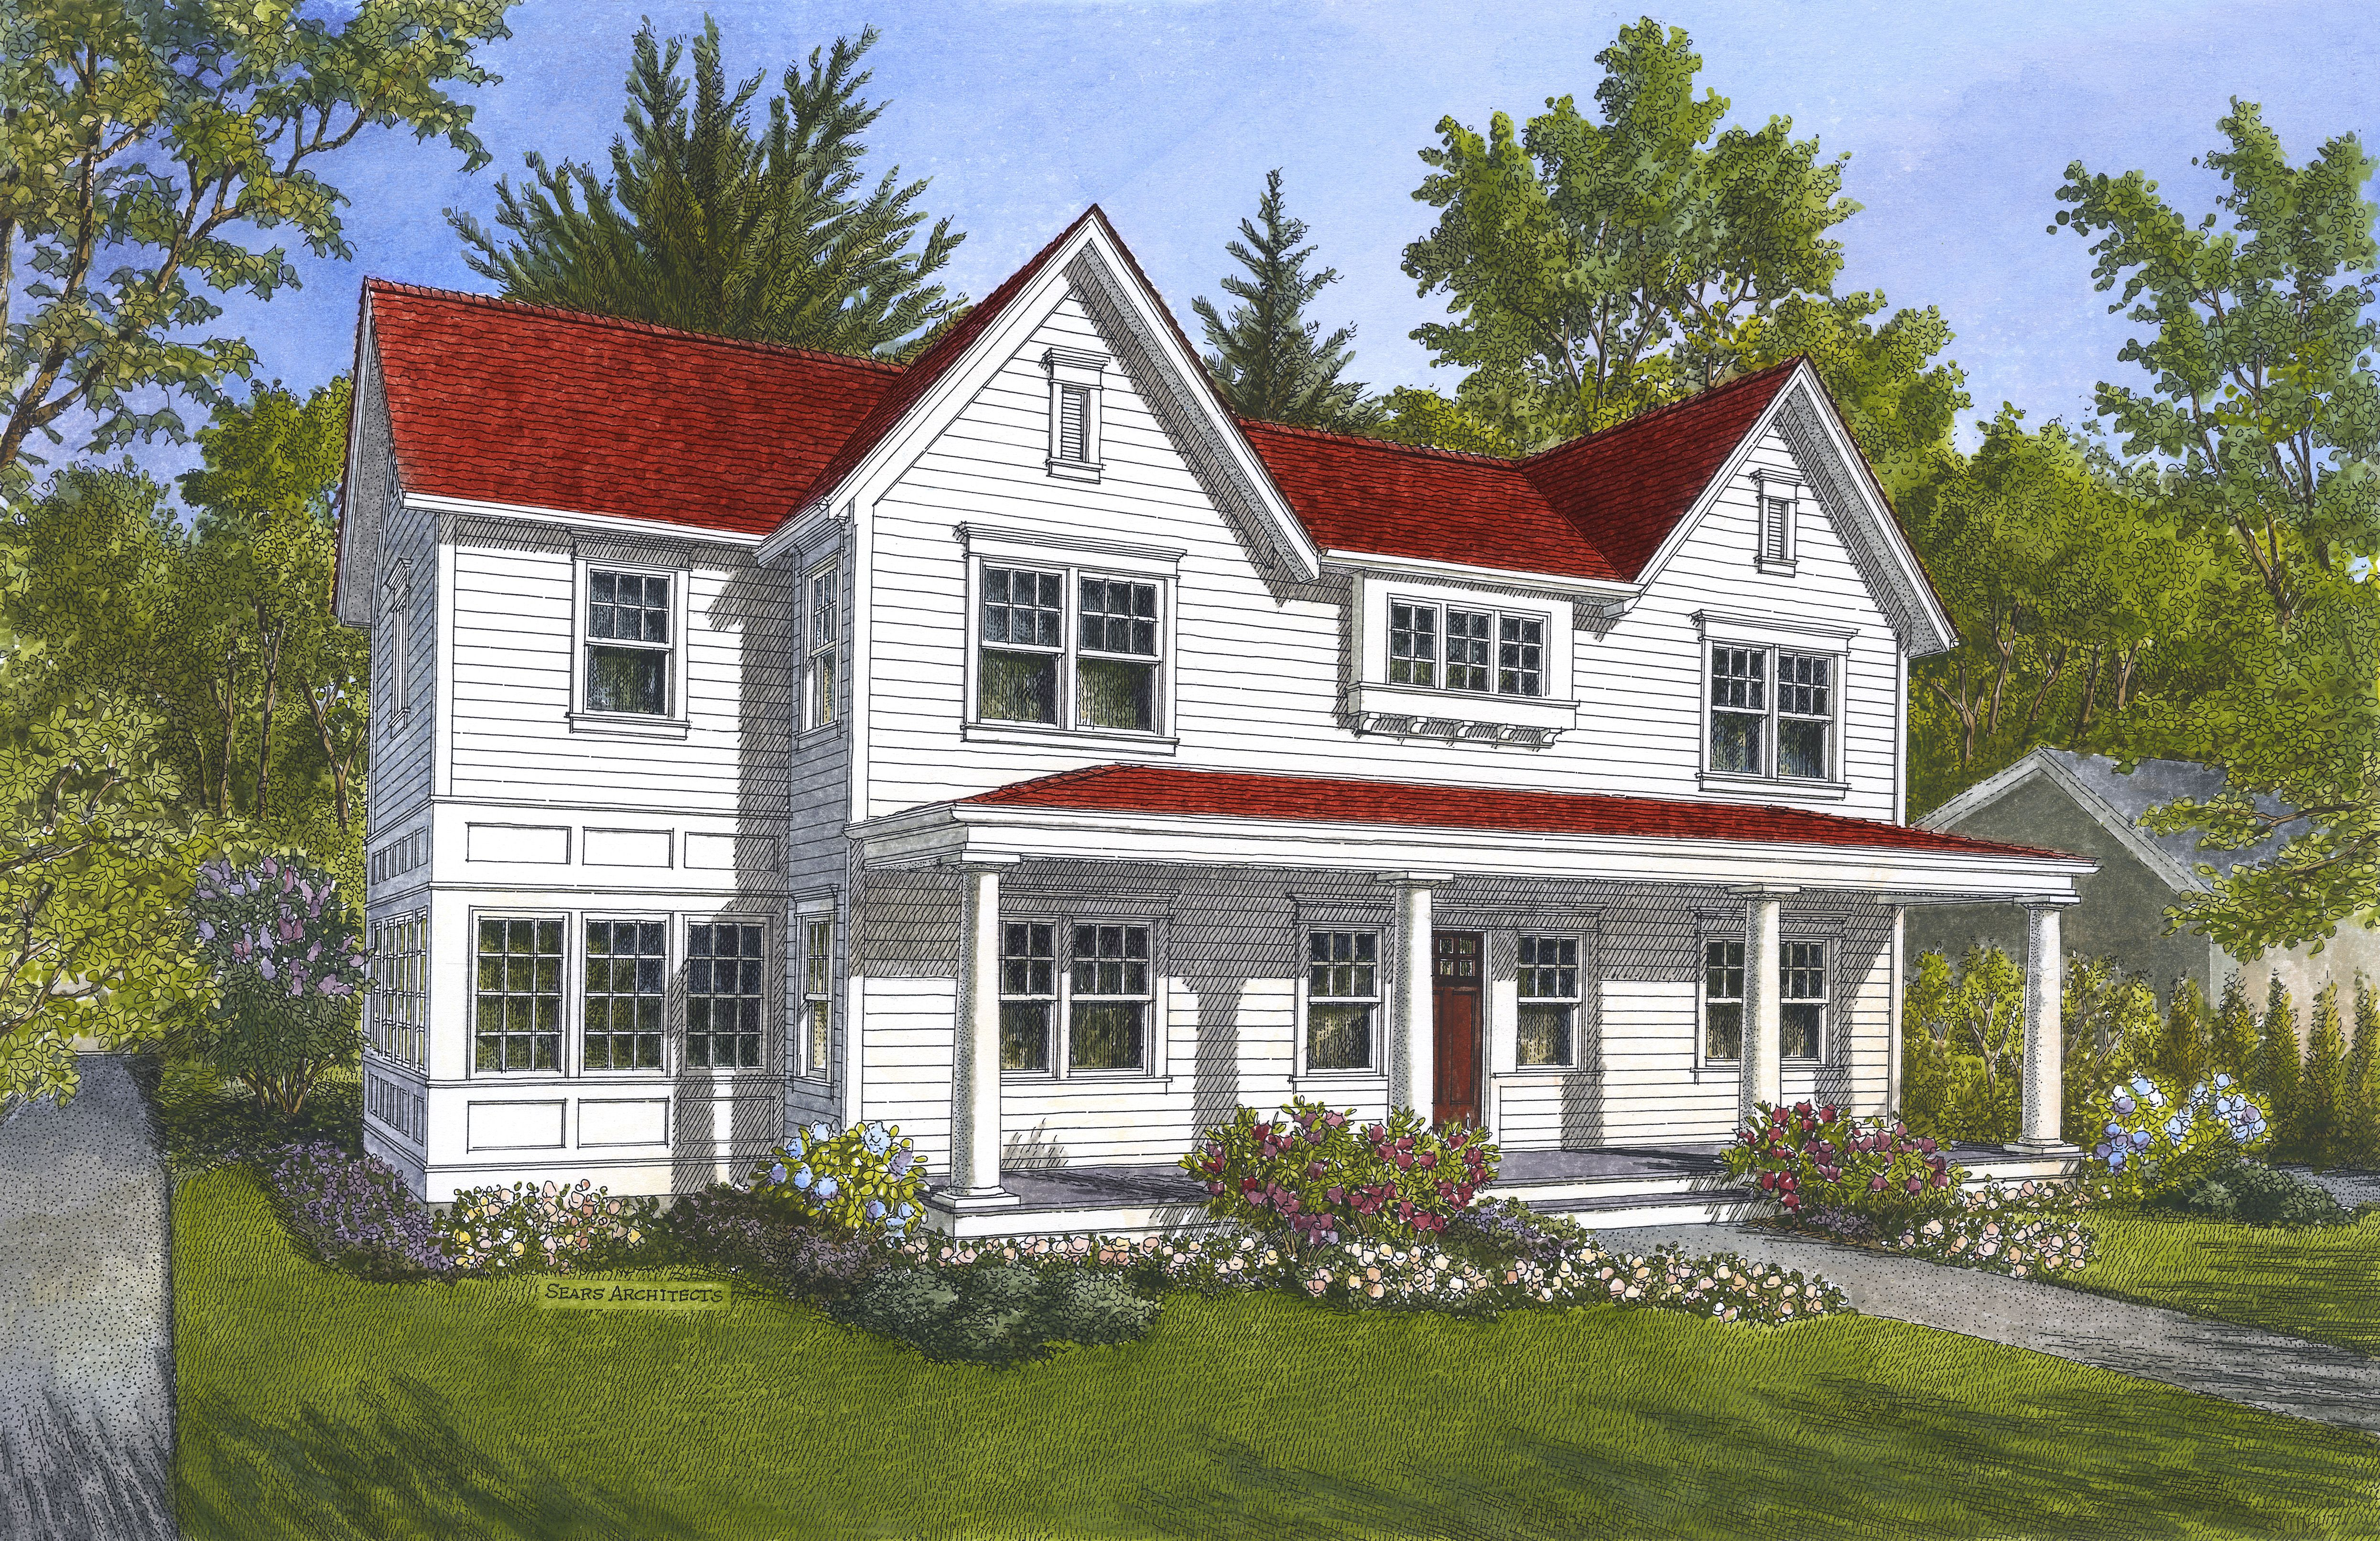 941 Pinecrest Featured On Mlive Sears Architects Red Roof